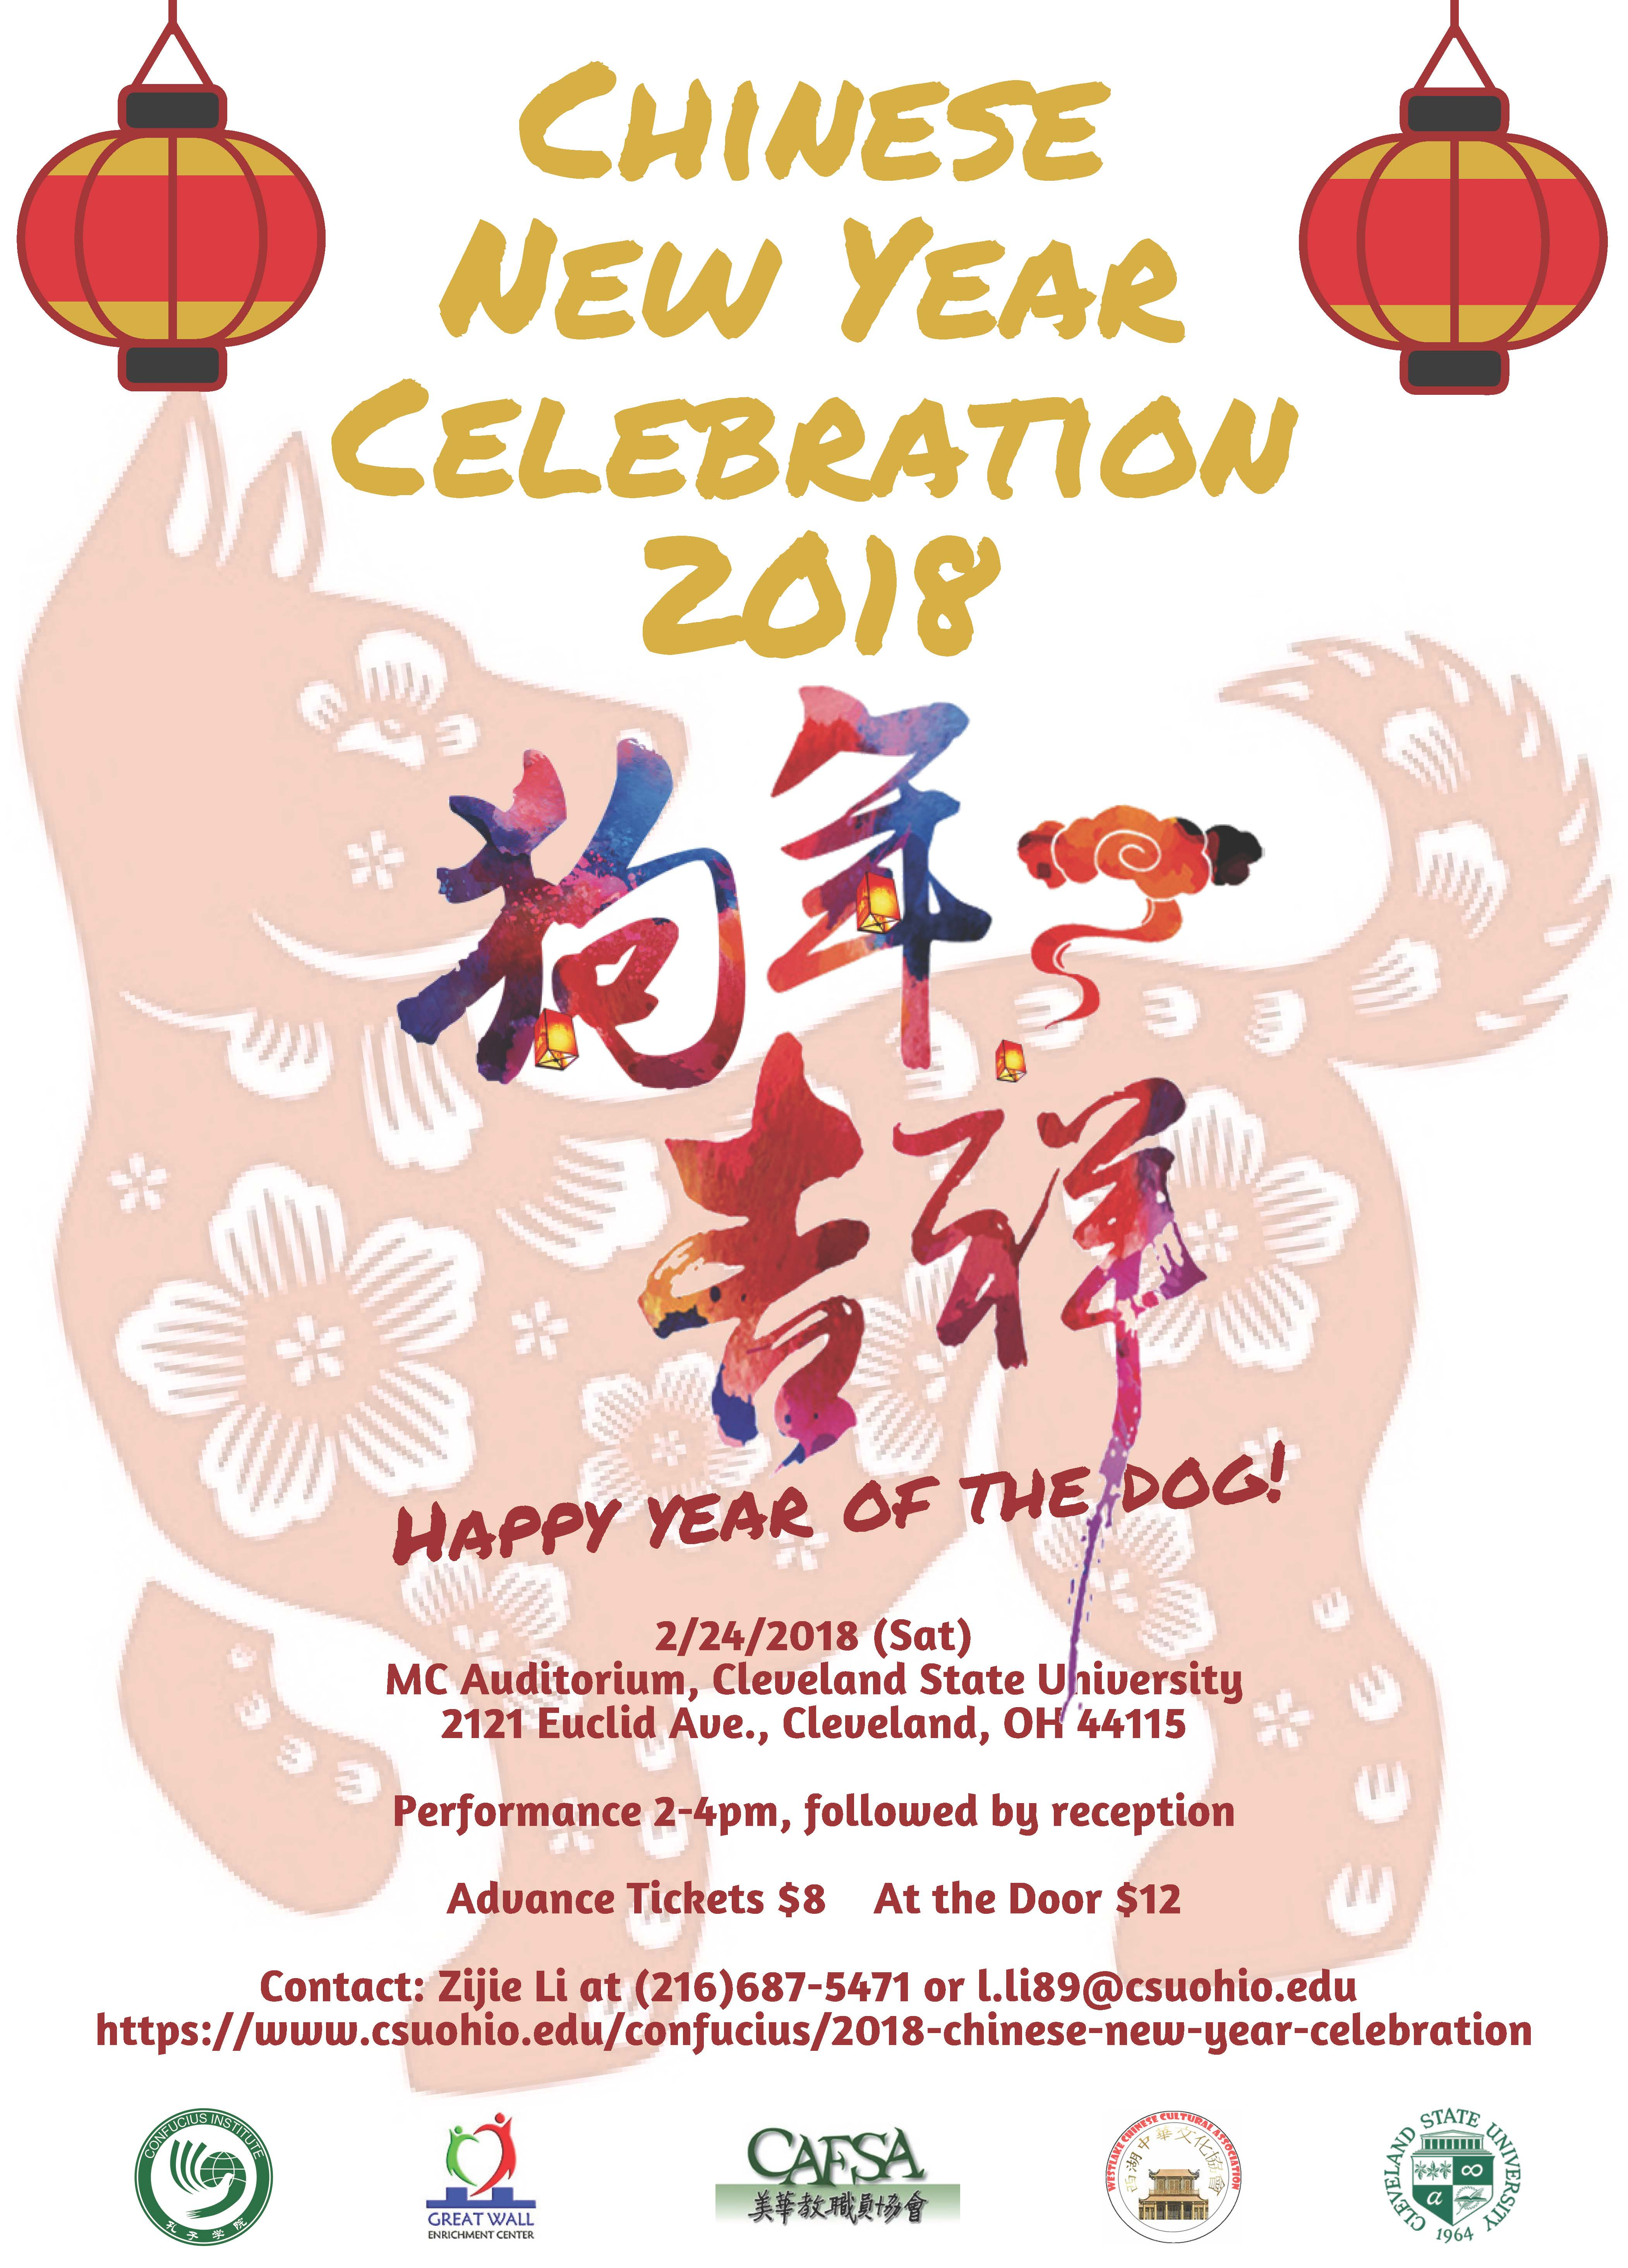 2018 Chinese New Year Celebration Cleveland State University